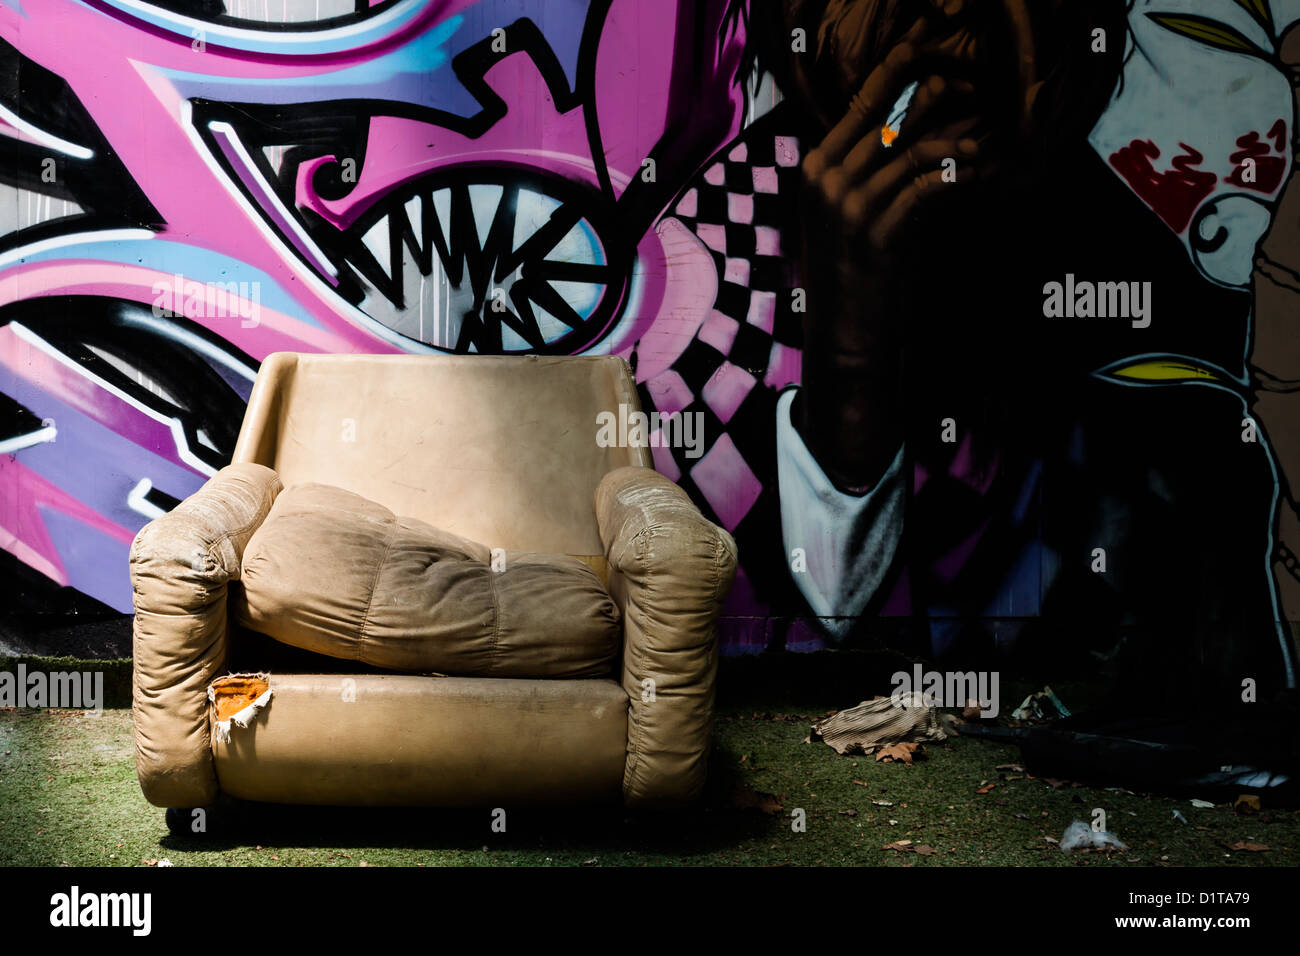 Abandoned armchair with graffiti background - Stock Image